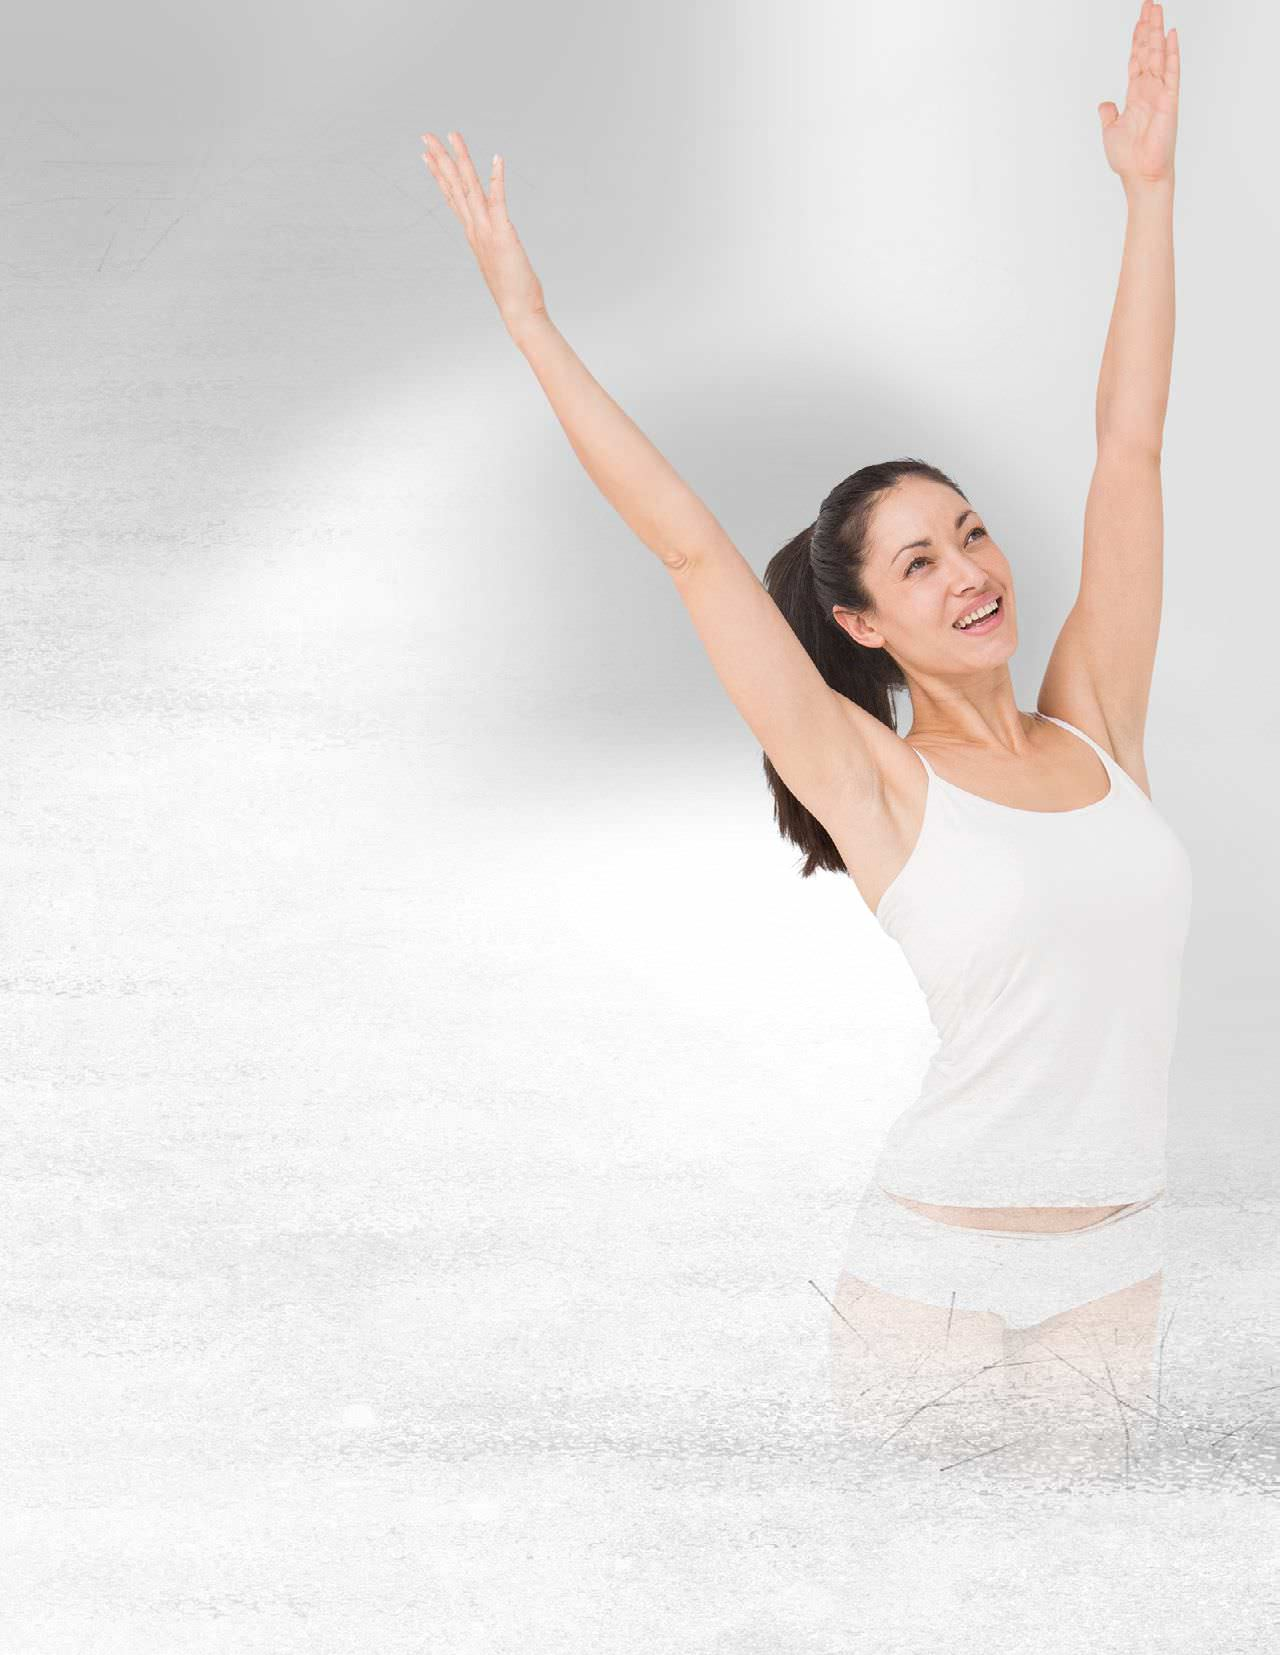 Successful Weight Loss And Fitness Depends On Spiritual Balance